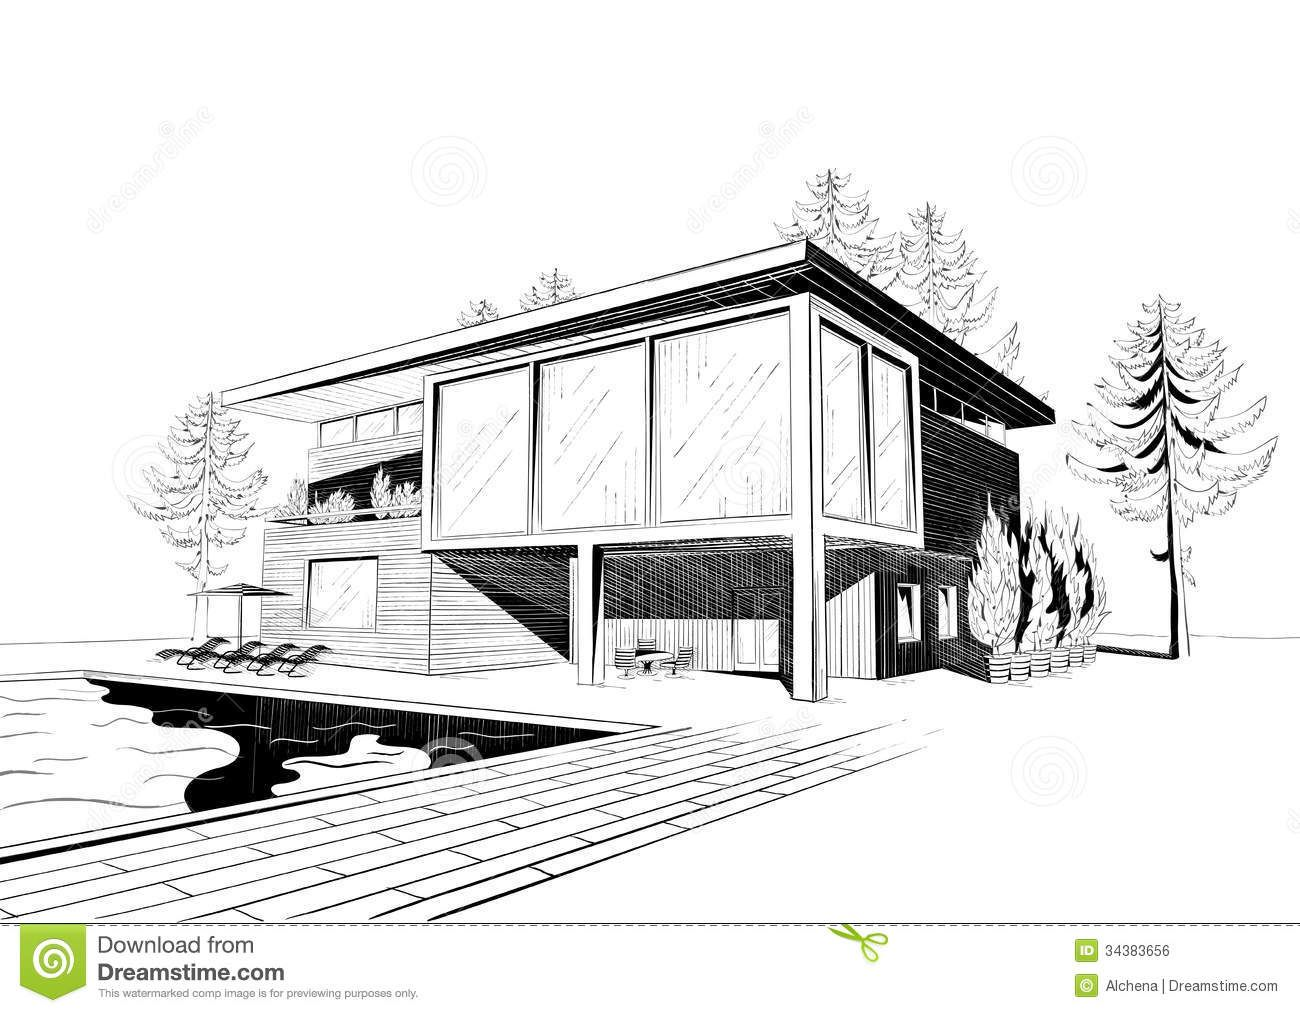 New Ideas Home Architecture Sketches And Architecture Sketches